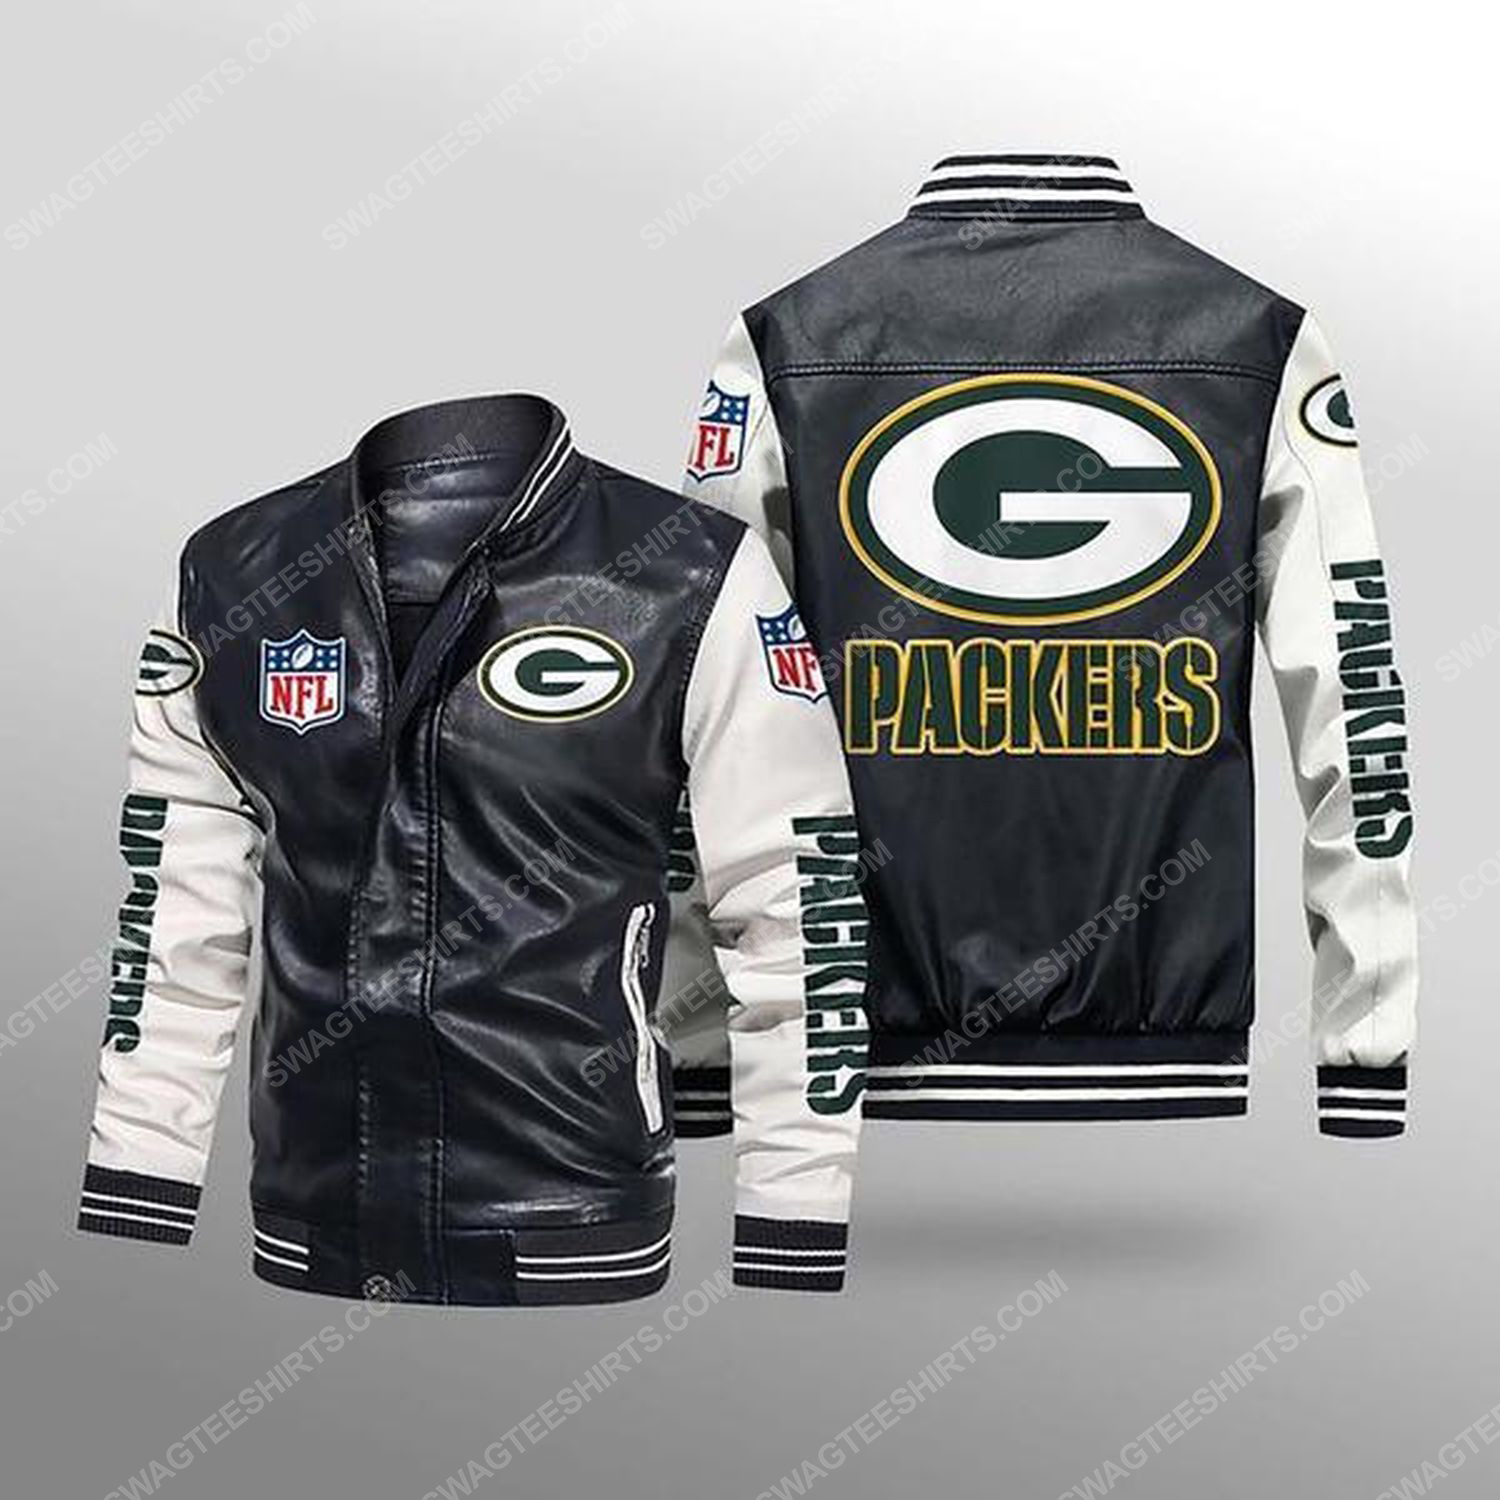 Green bay packers all over print leather bomber jacket - white